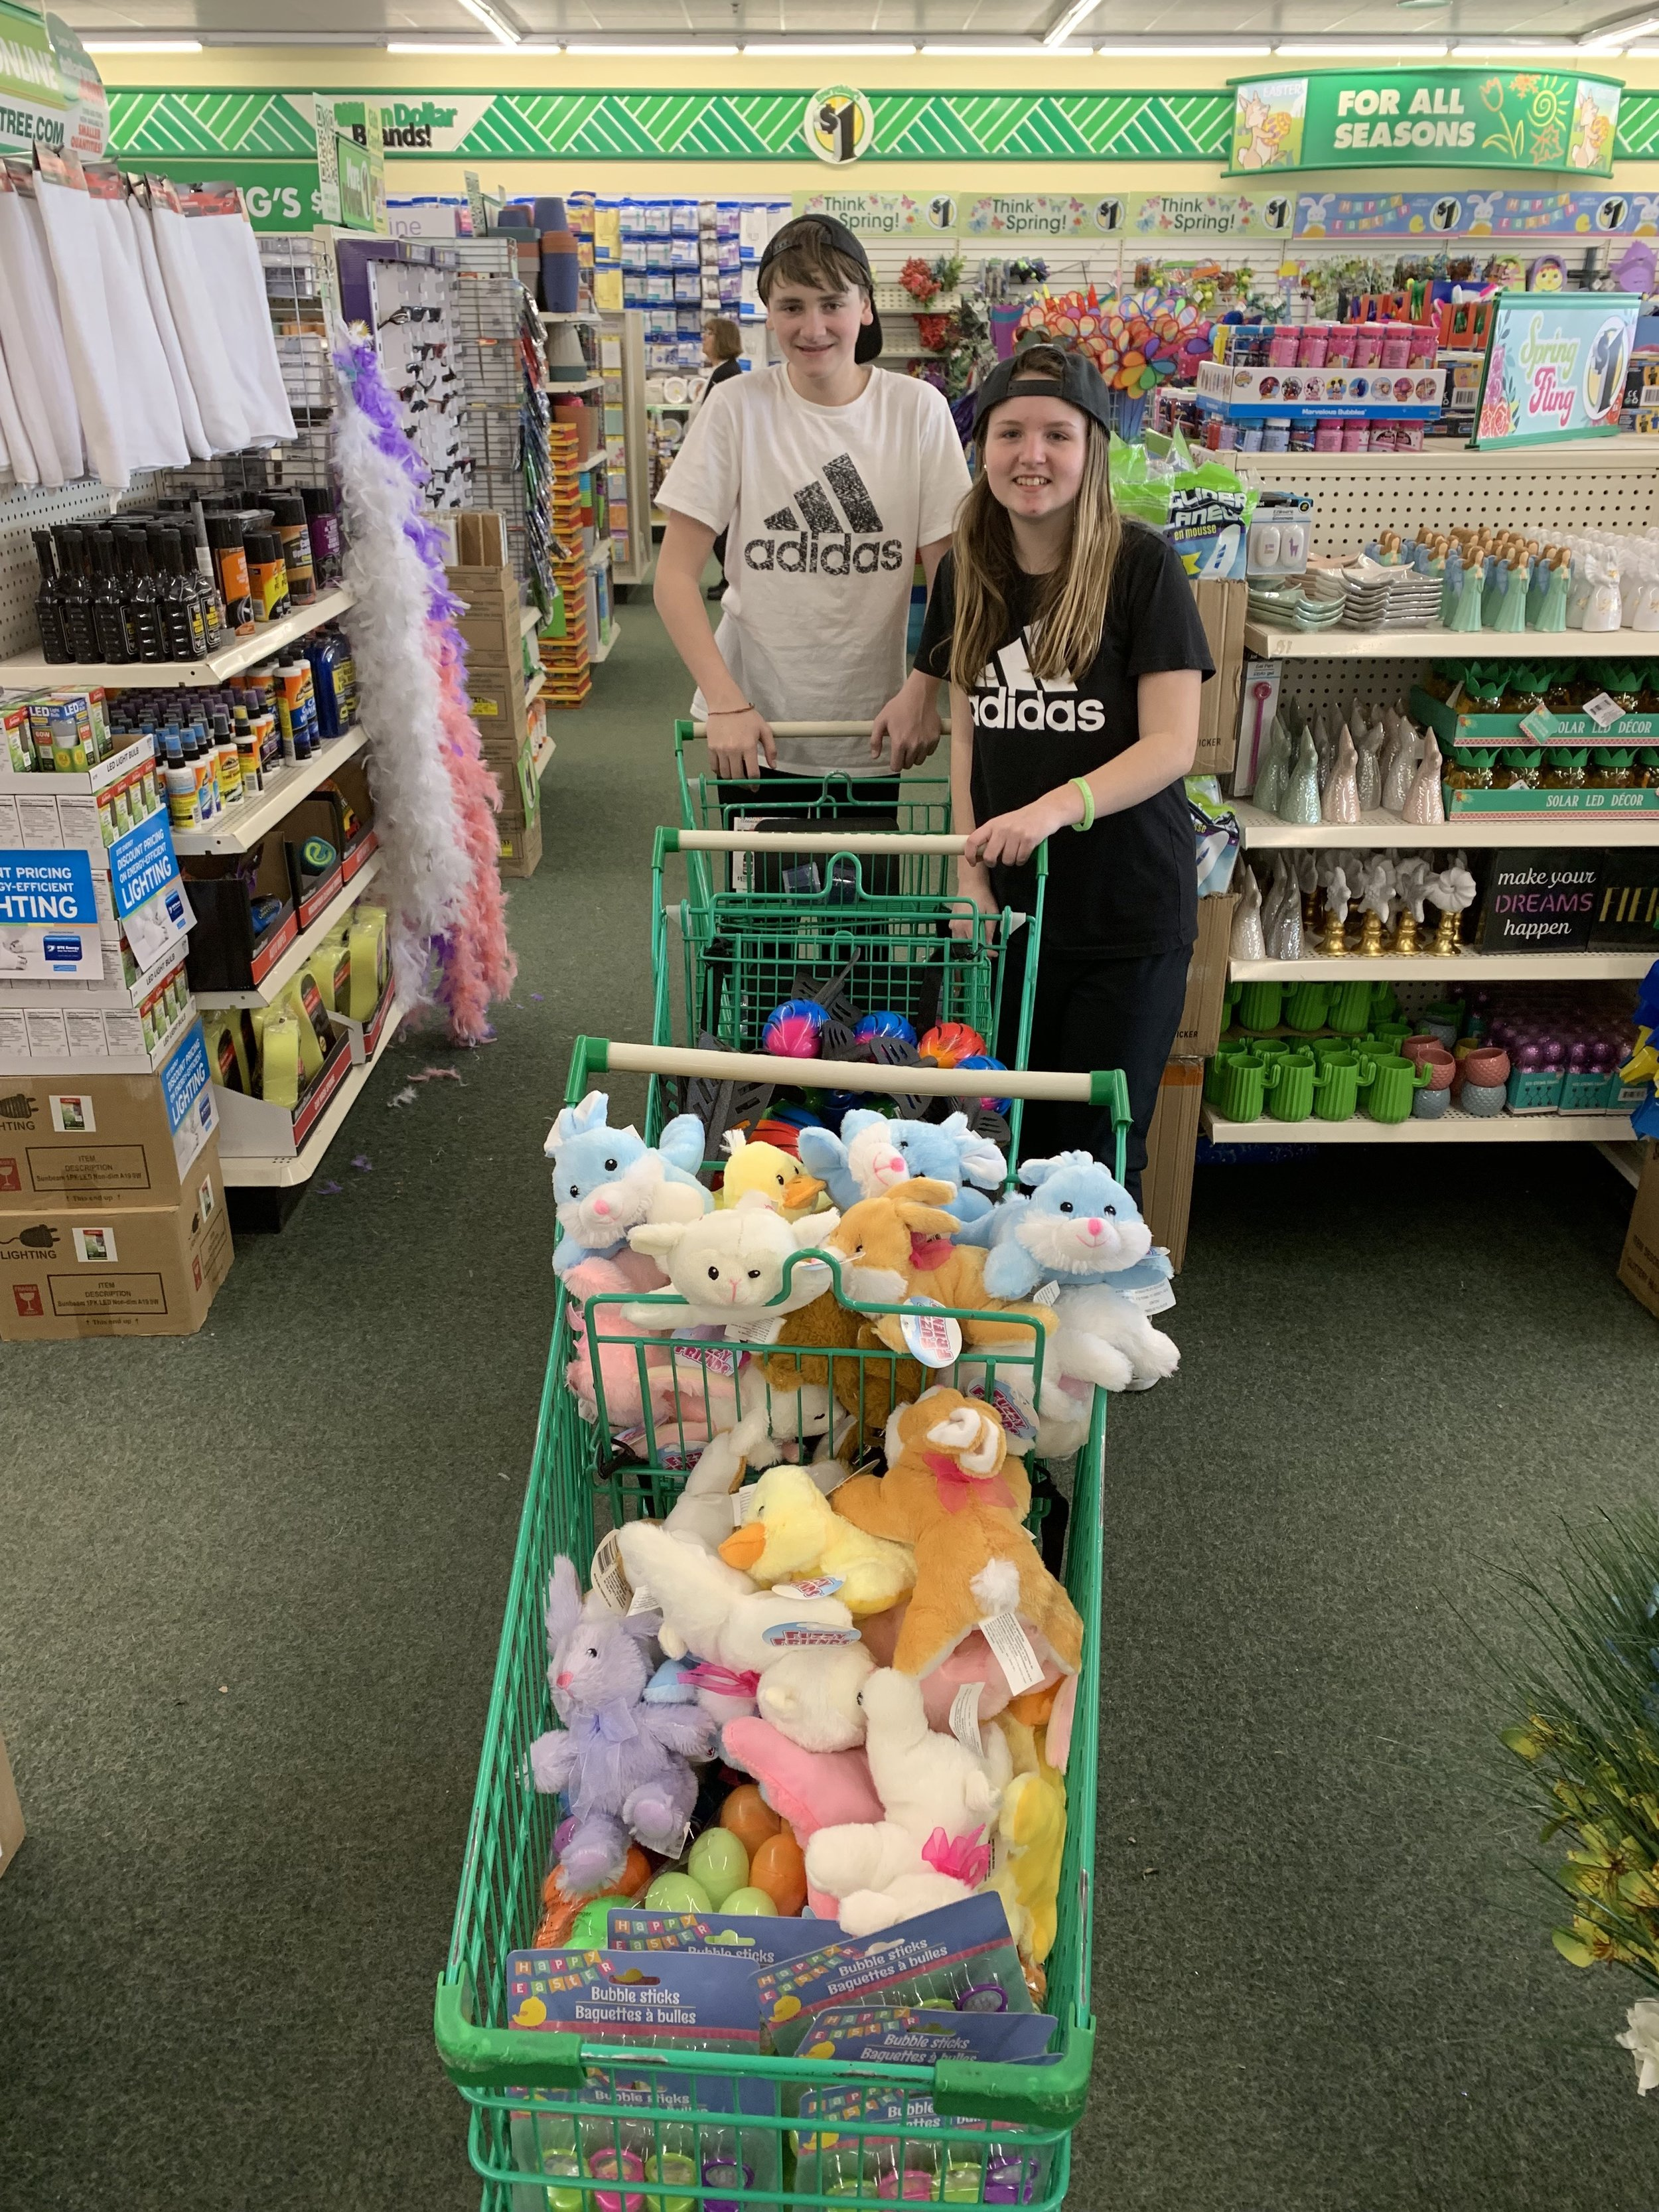 Joey Johnston (Pete & Paula's youngest son) and his friend, Desiree, helping shop for the Easter baskets.